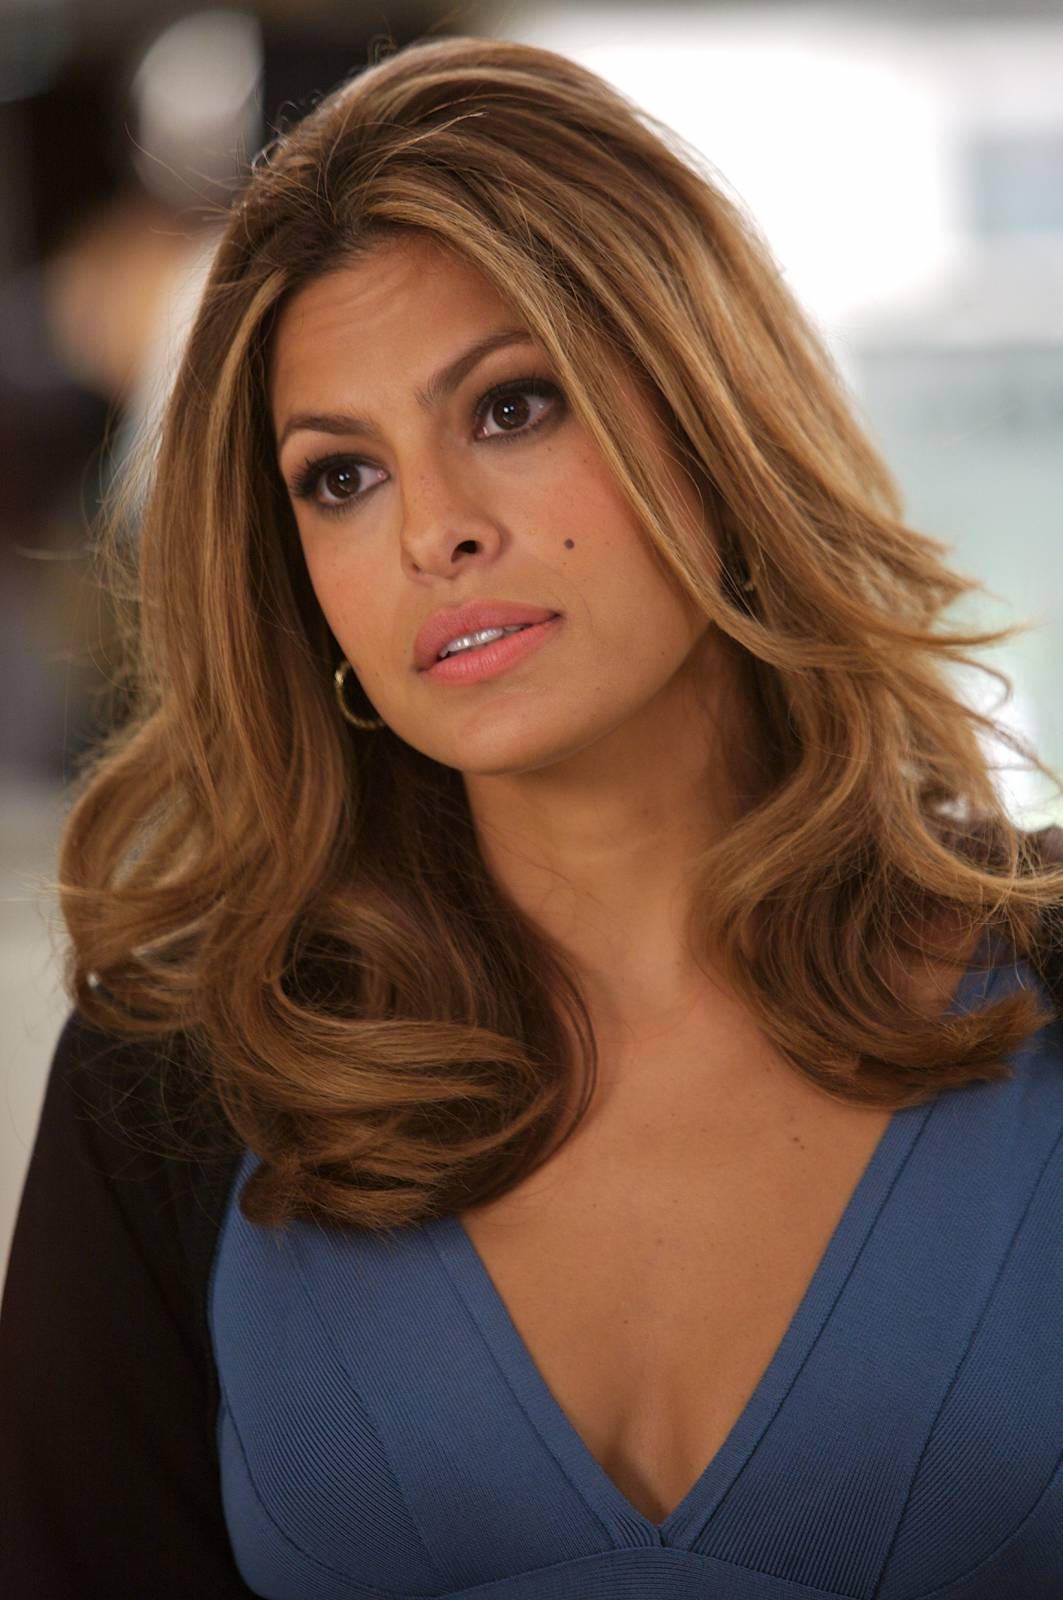 Top 10 Eva Mendes Without Makeup | Styles At LIfe